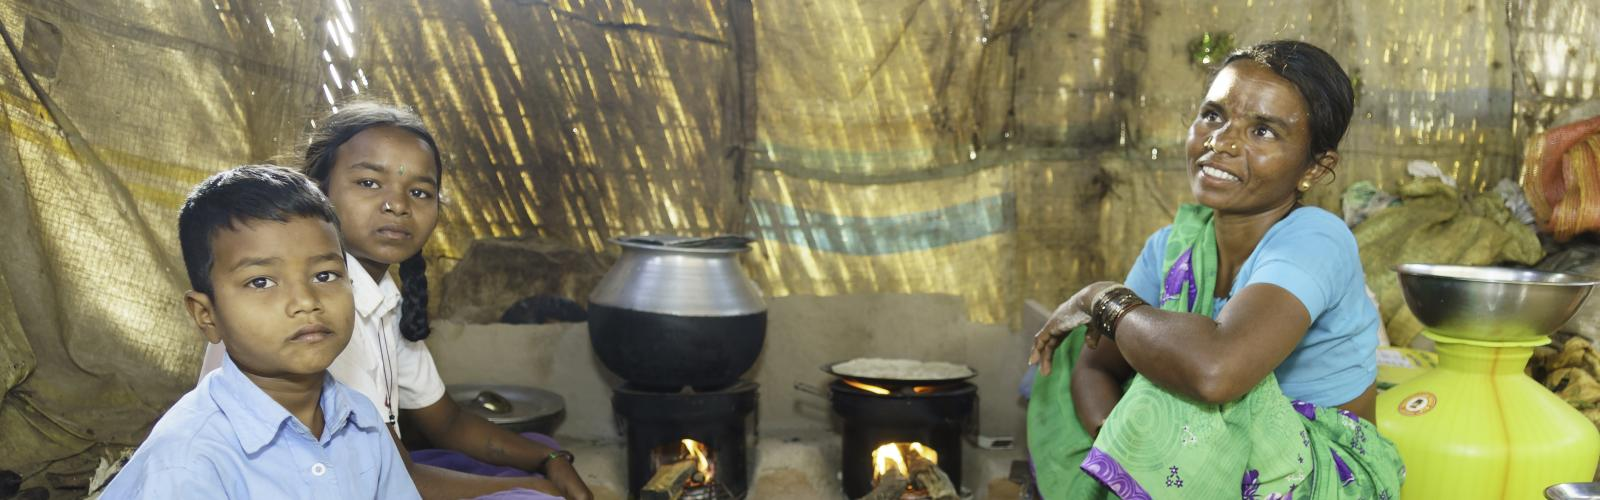 Woman and children with cookstove in India